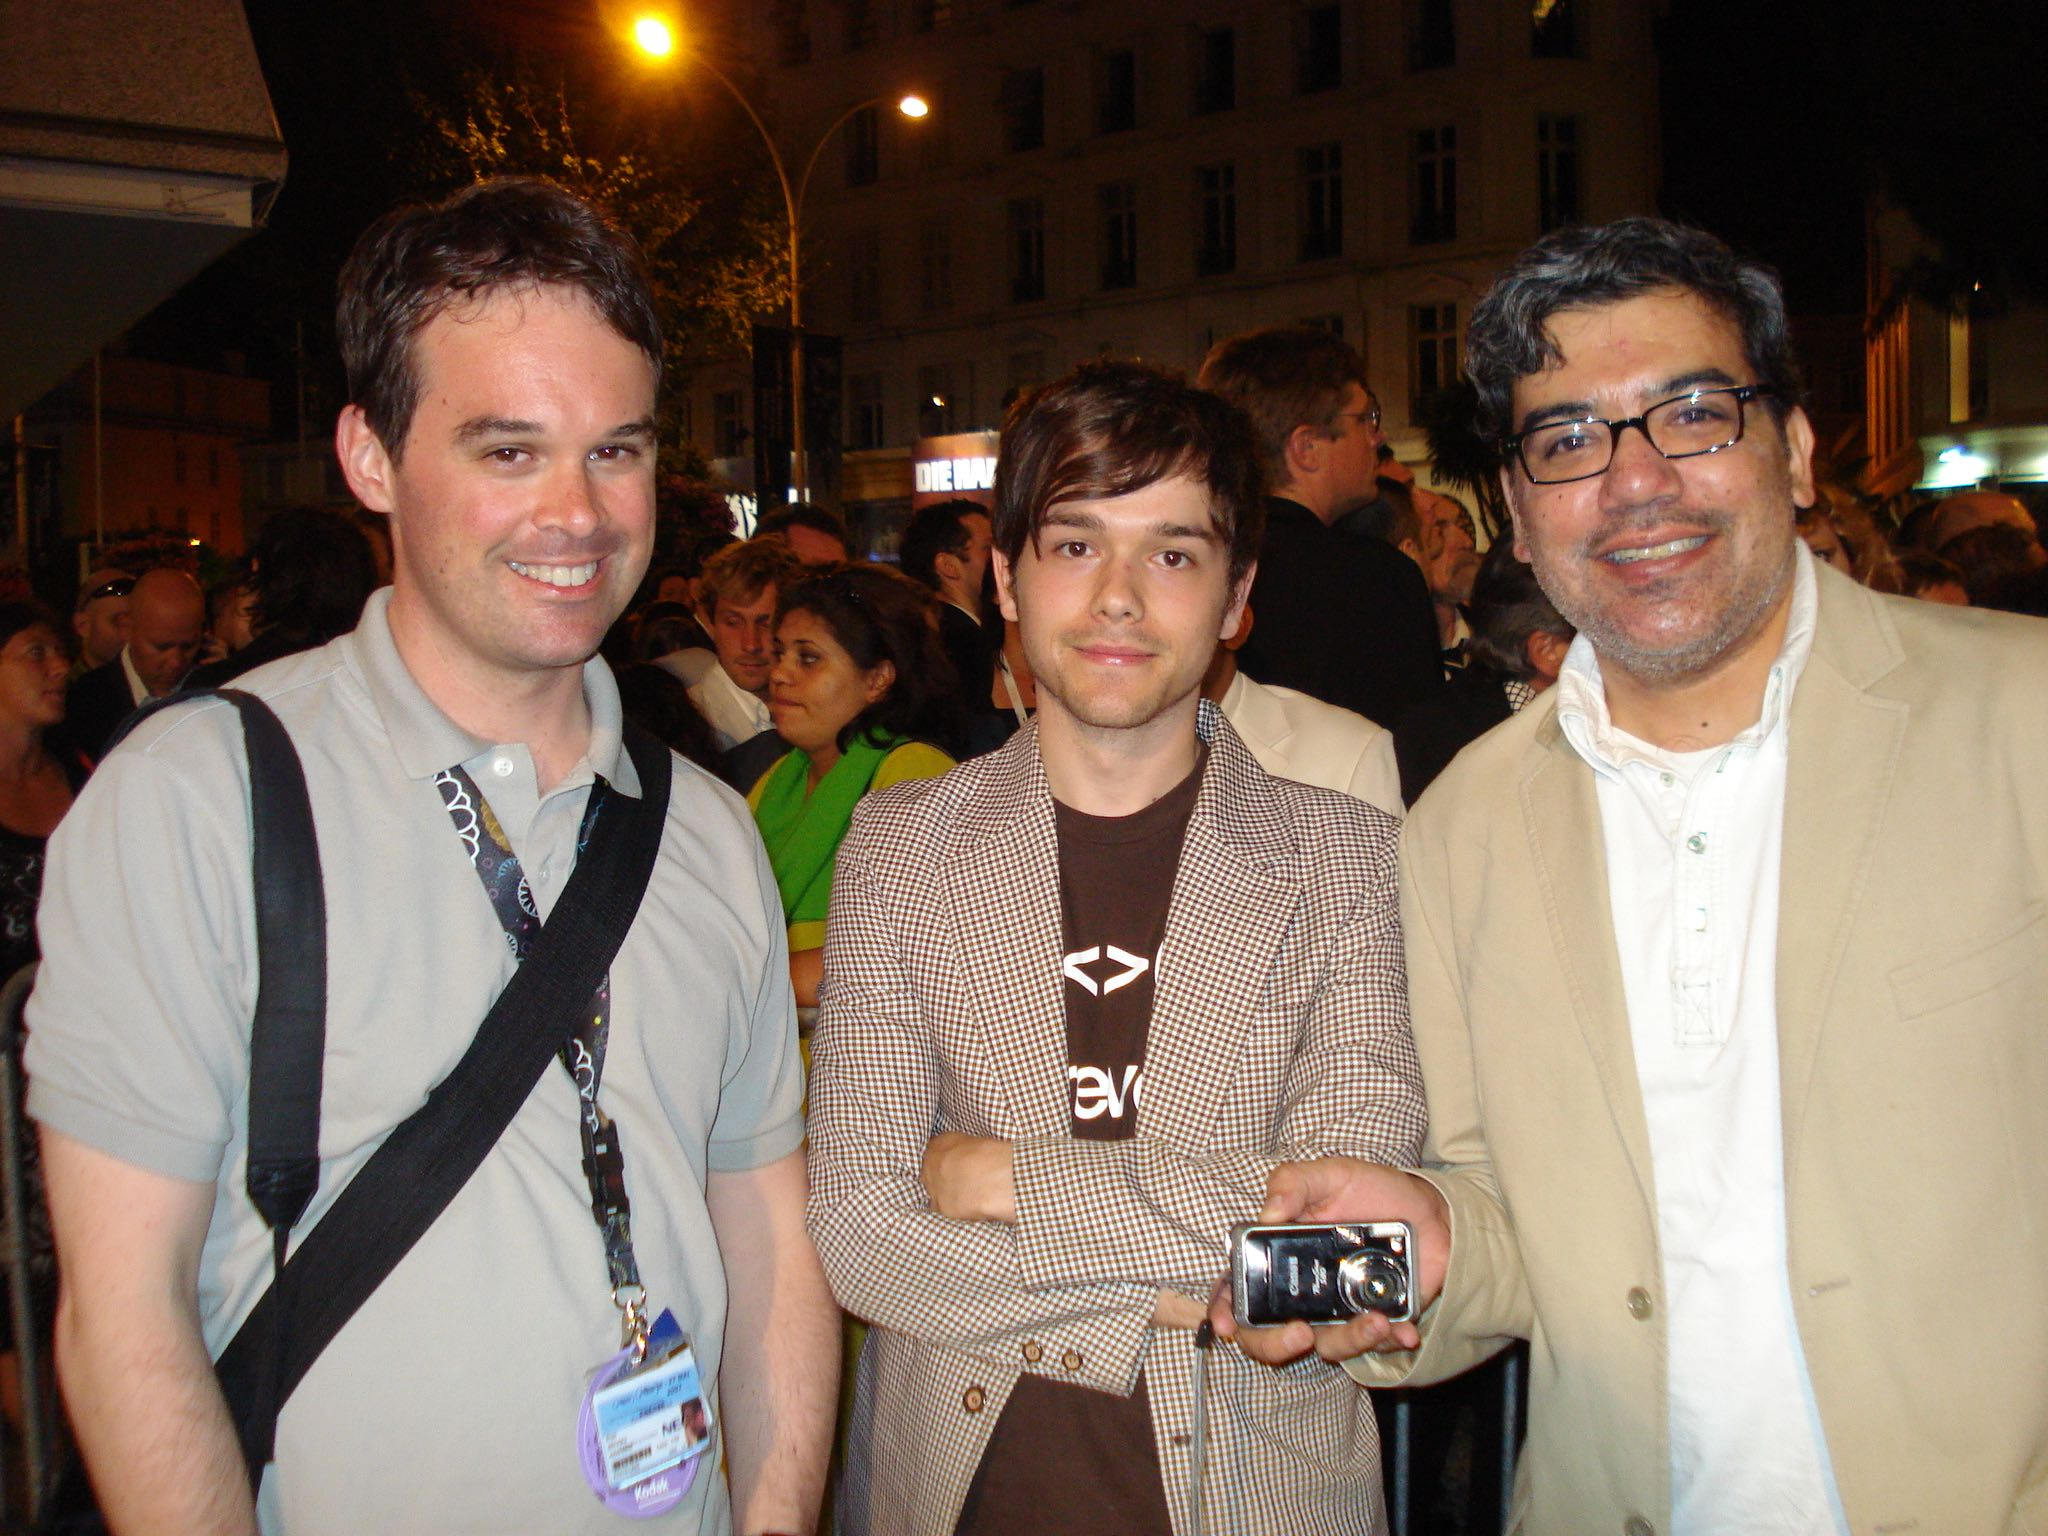 Brian Brooks, Peter Knegt and Eugene Hernandez in Cannes in 2007